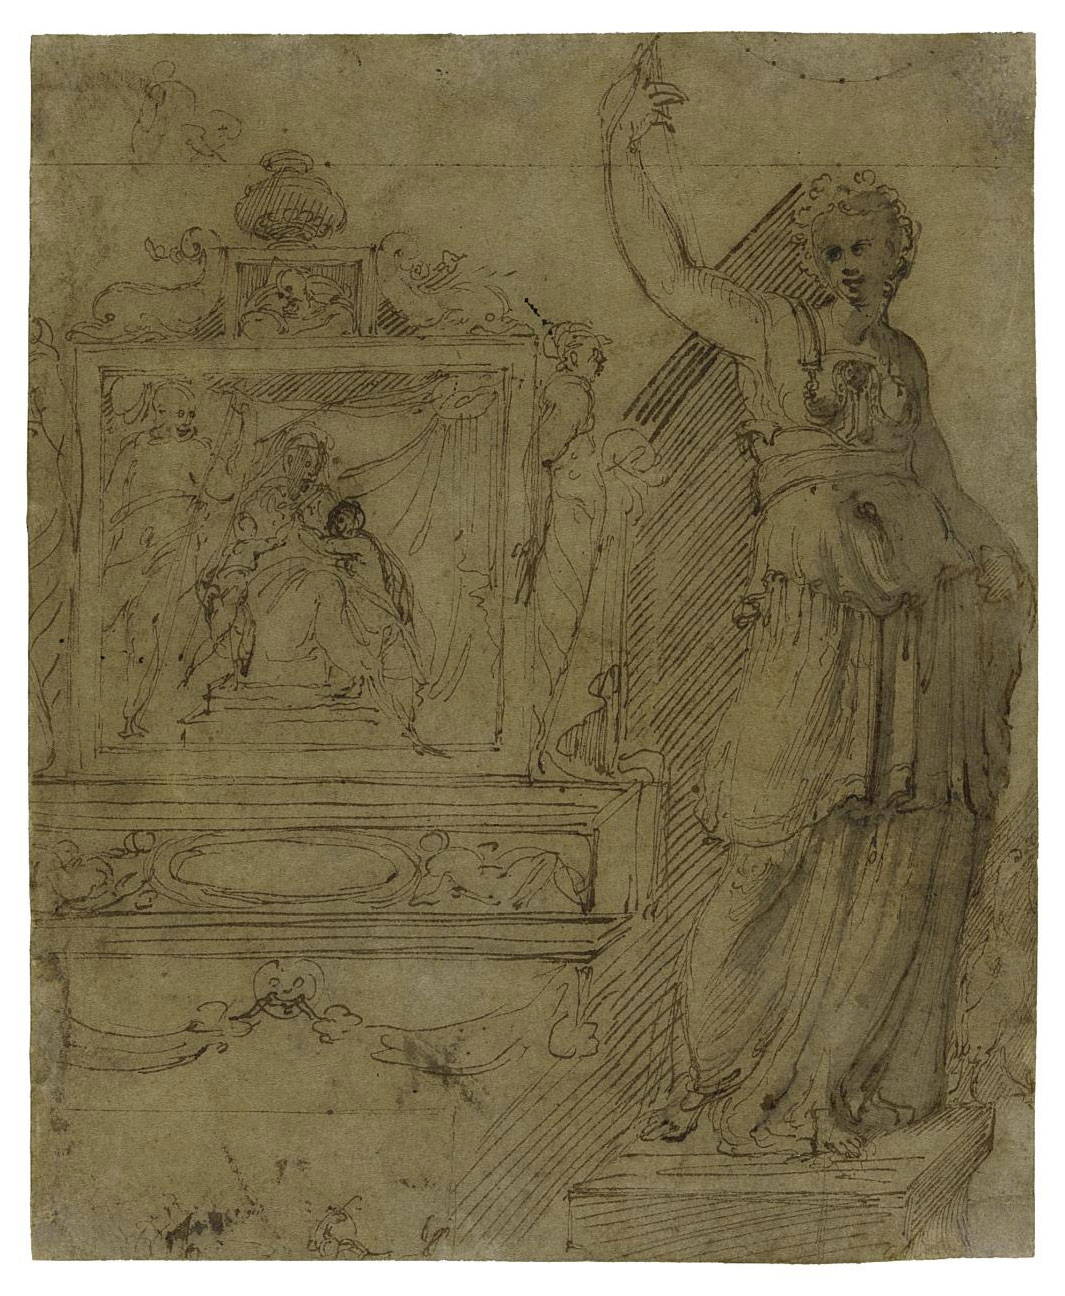 Design for the wall of a chapel, with a panel of the Madonna and Child, a further study of an allegorical female figure